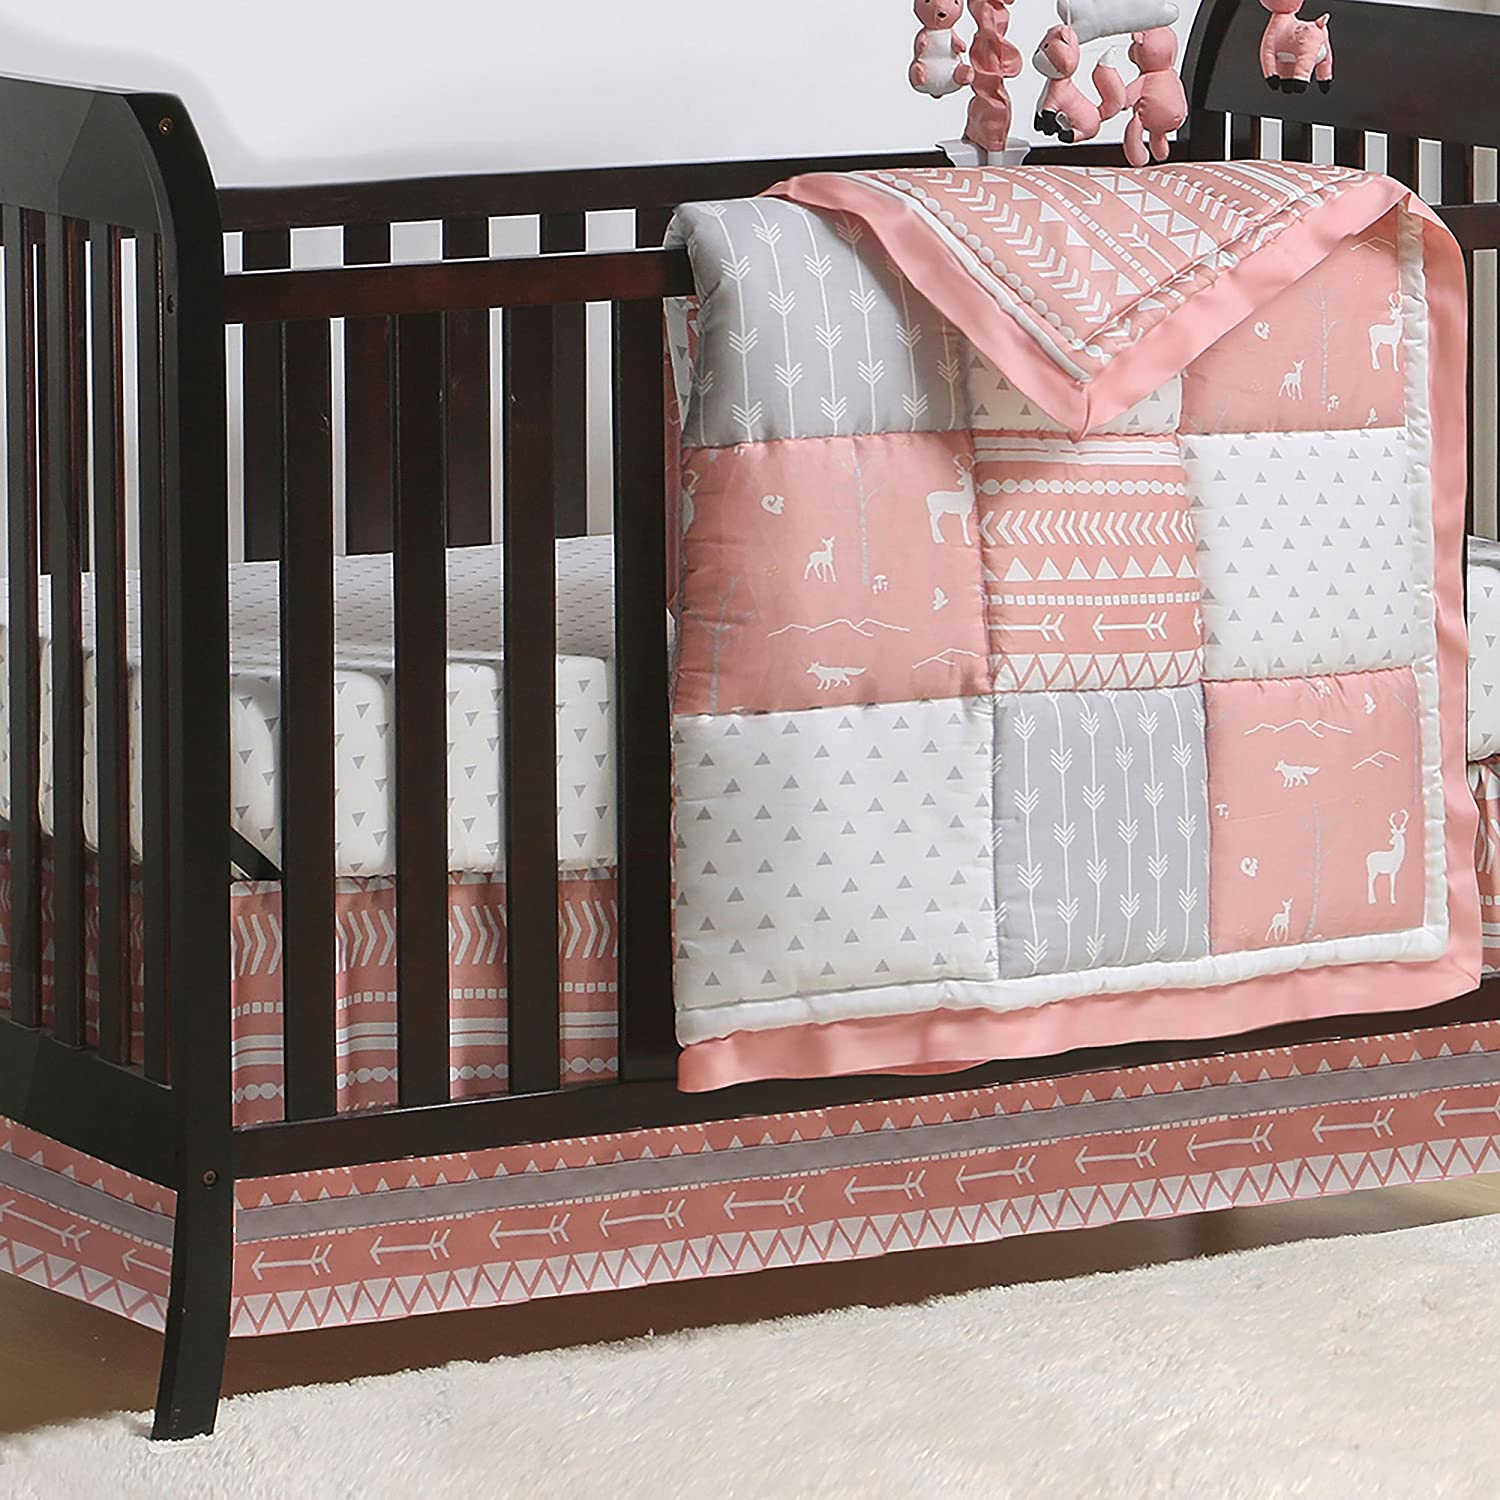 Coral Woodland and Geometric Patchwork 3 Piece Crib Bedding by The Peanut Shell